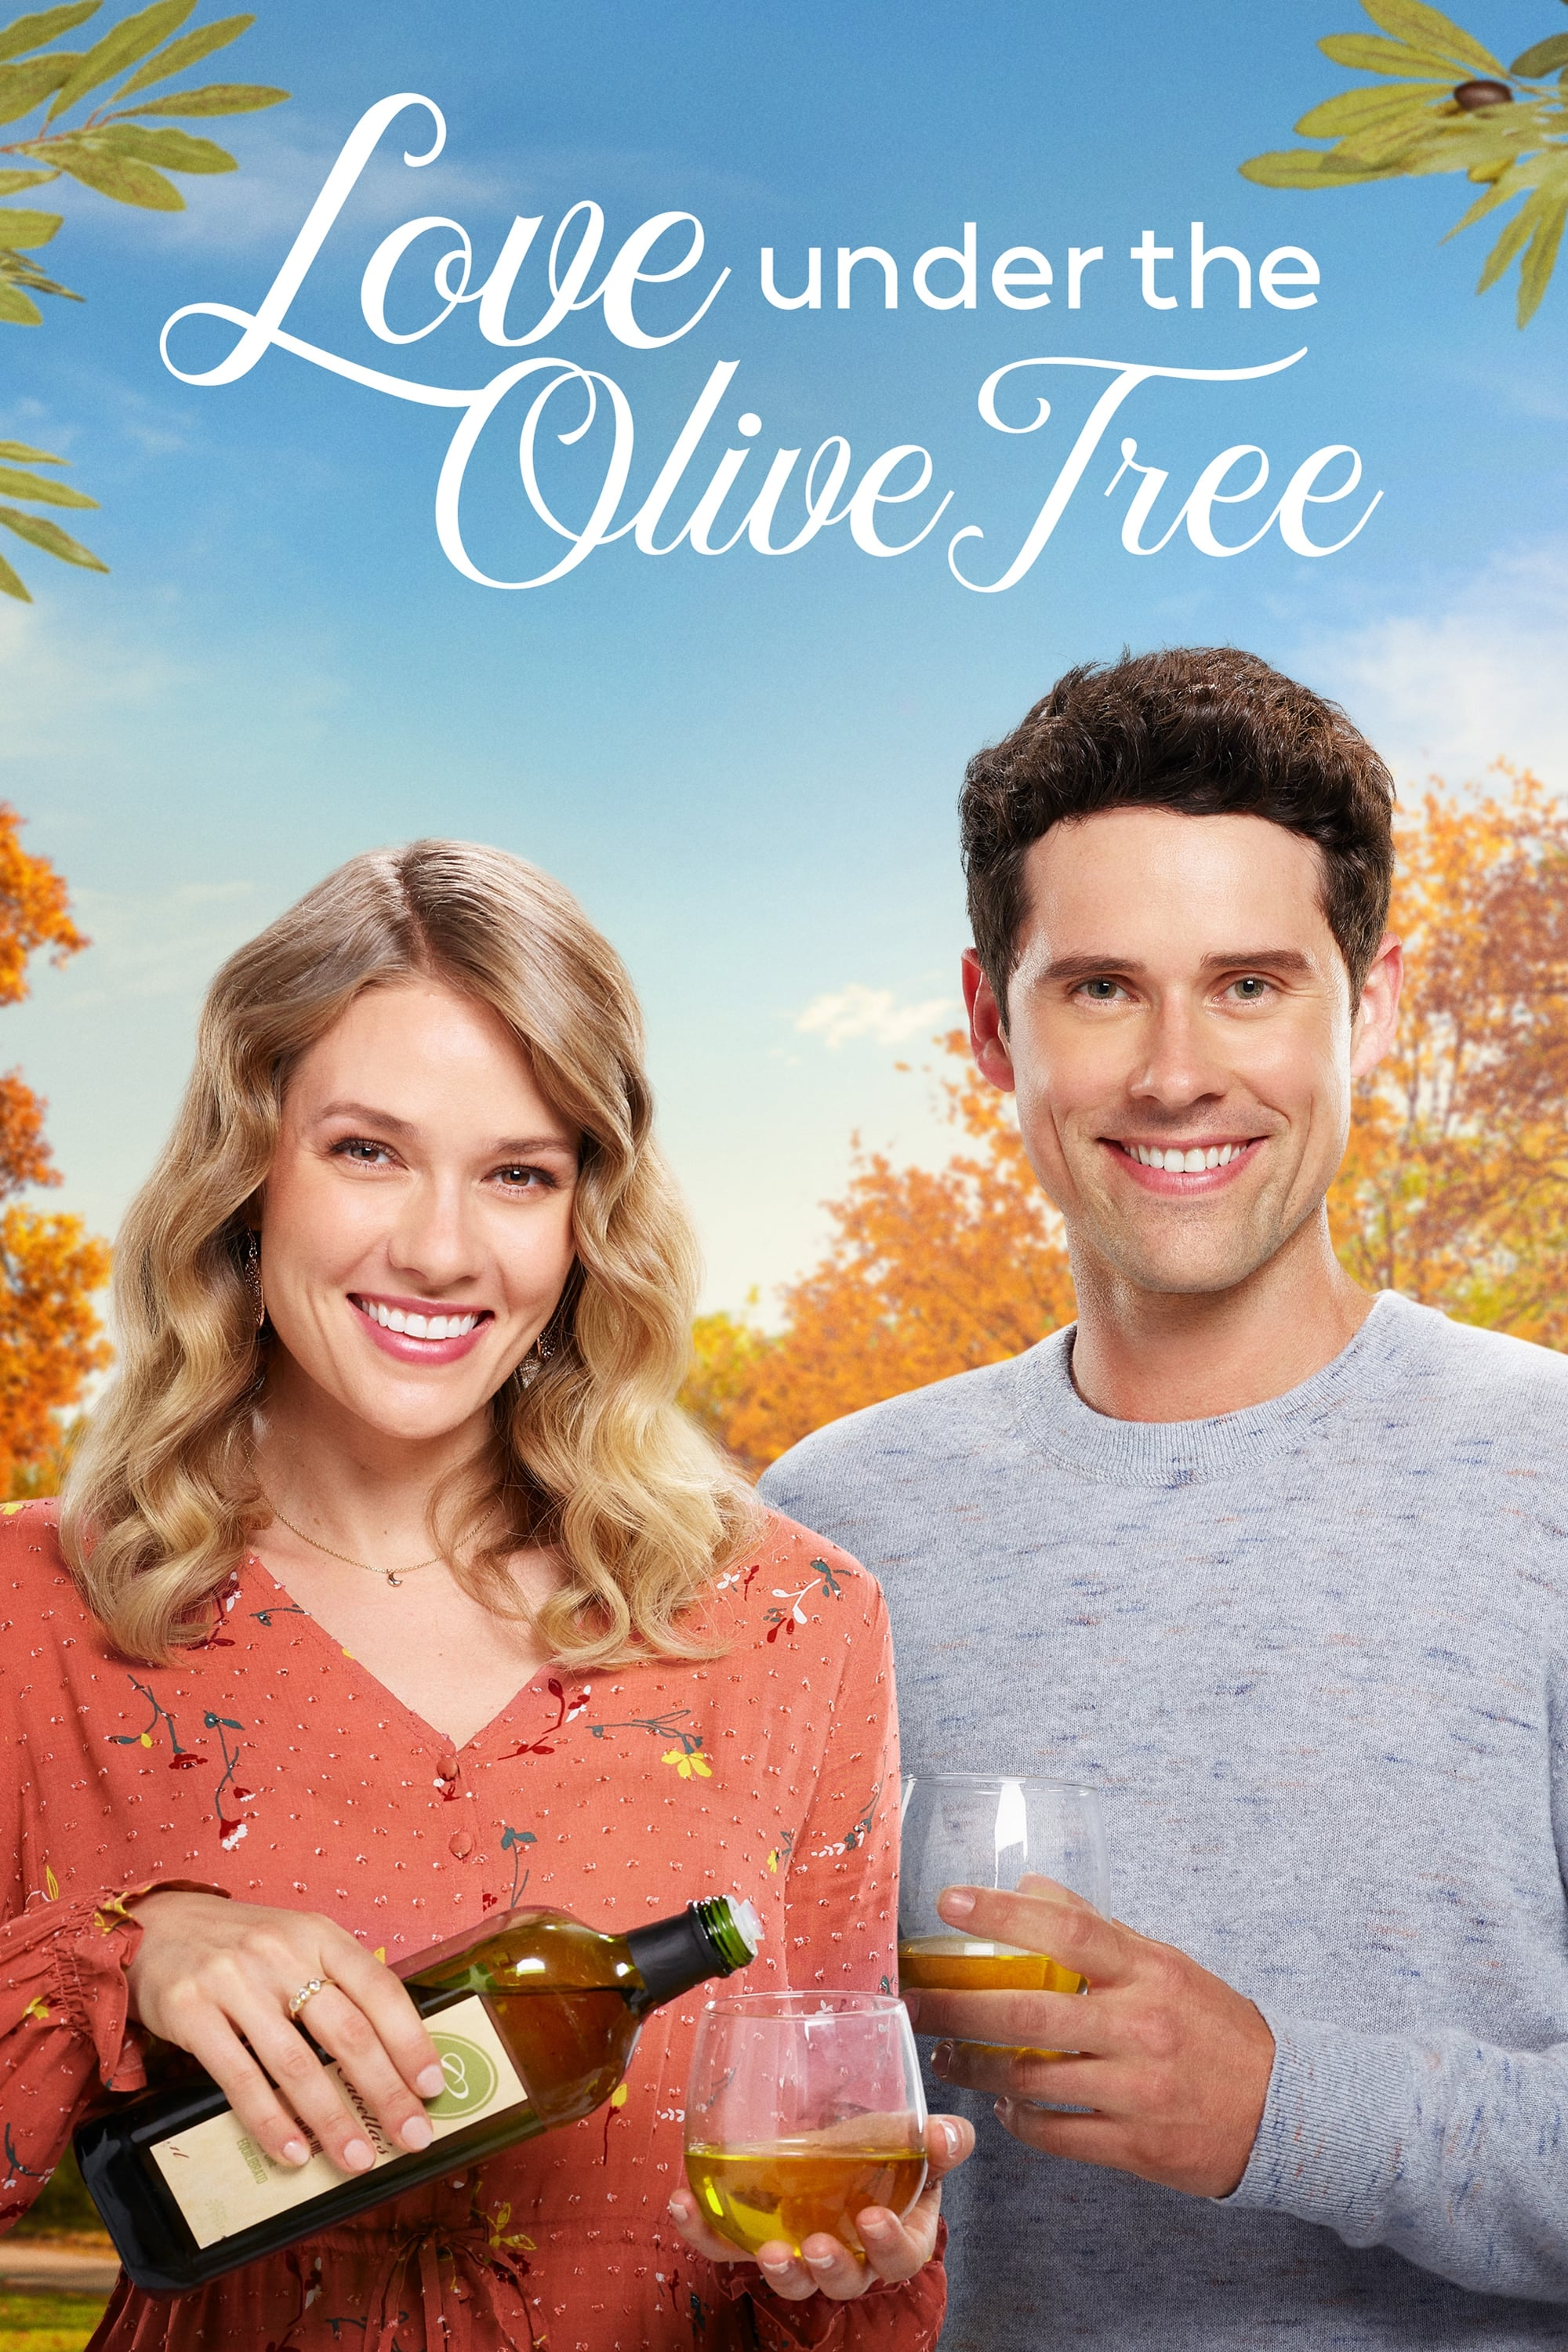 Love Under the Olive Tree